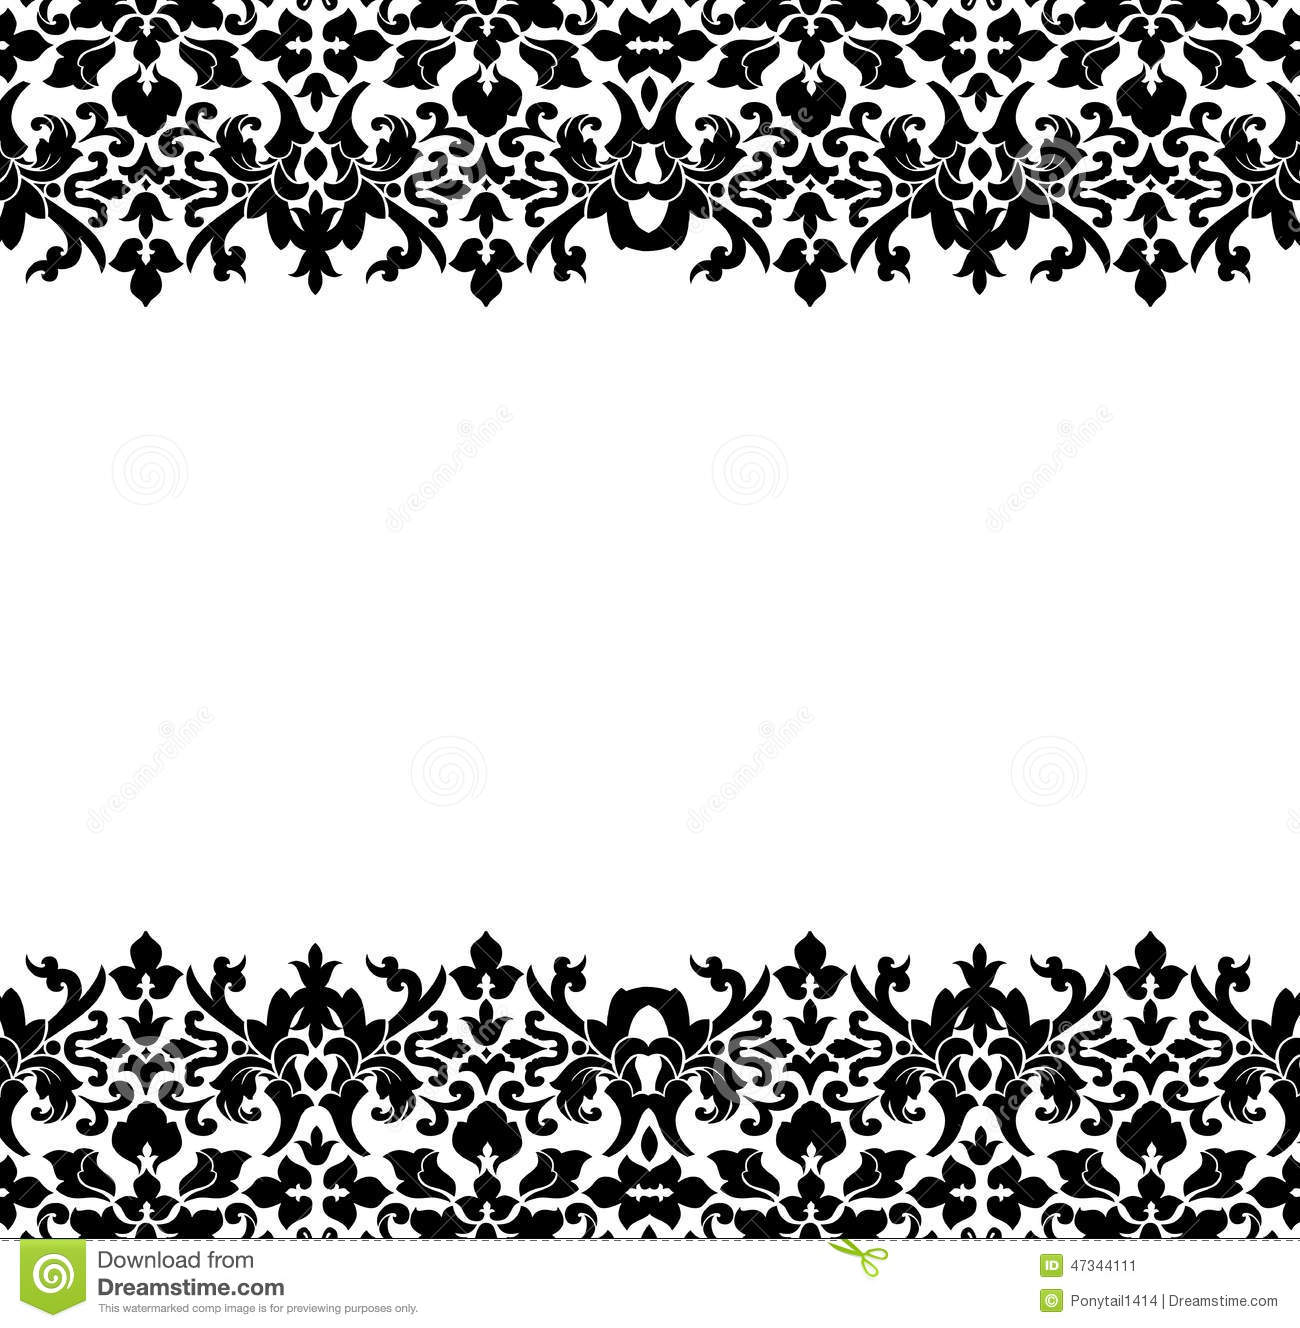 Fancy gold corner borders png